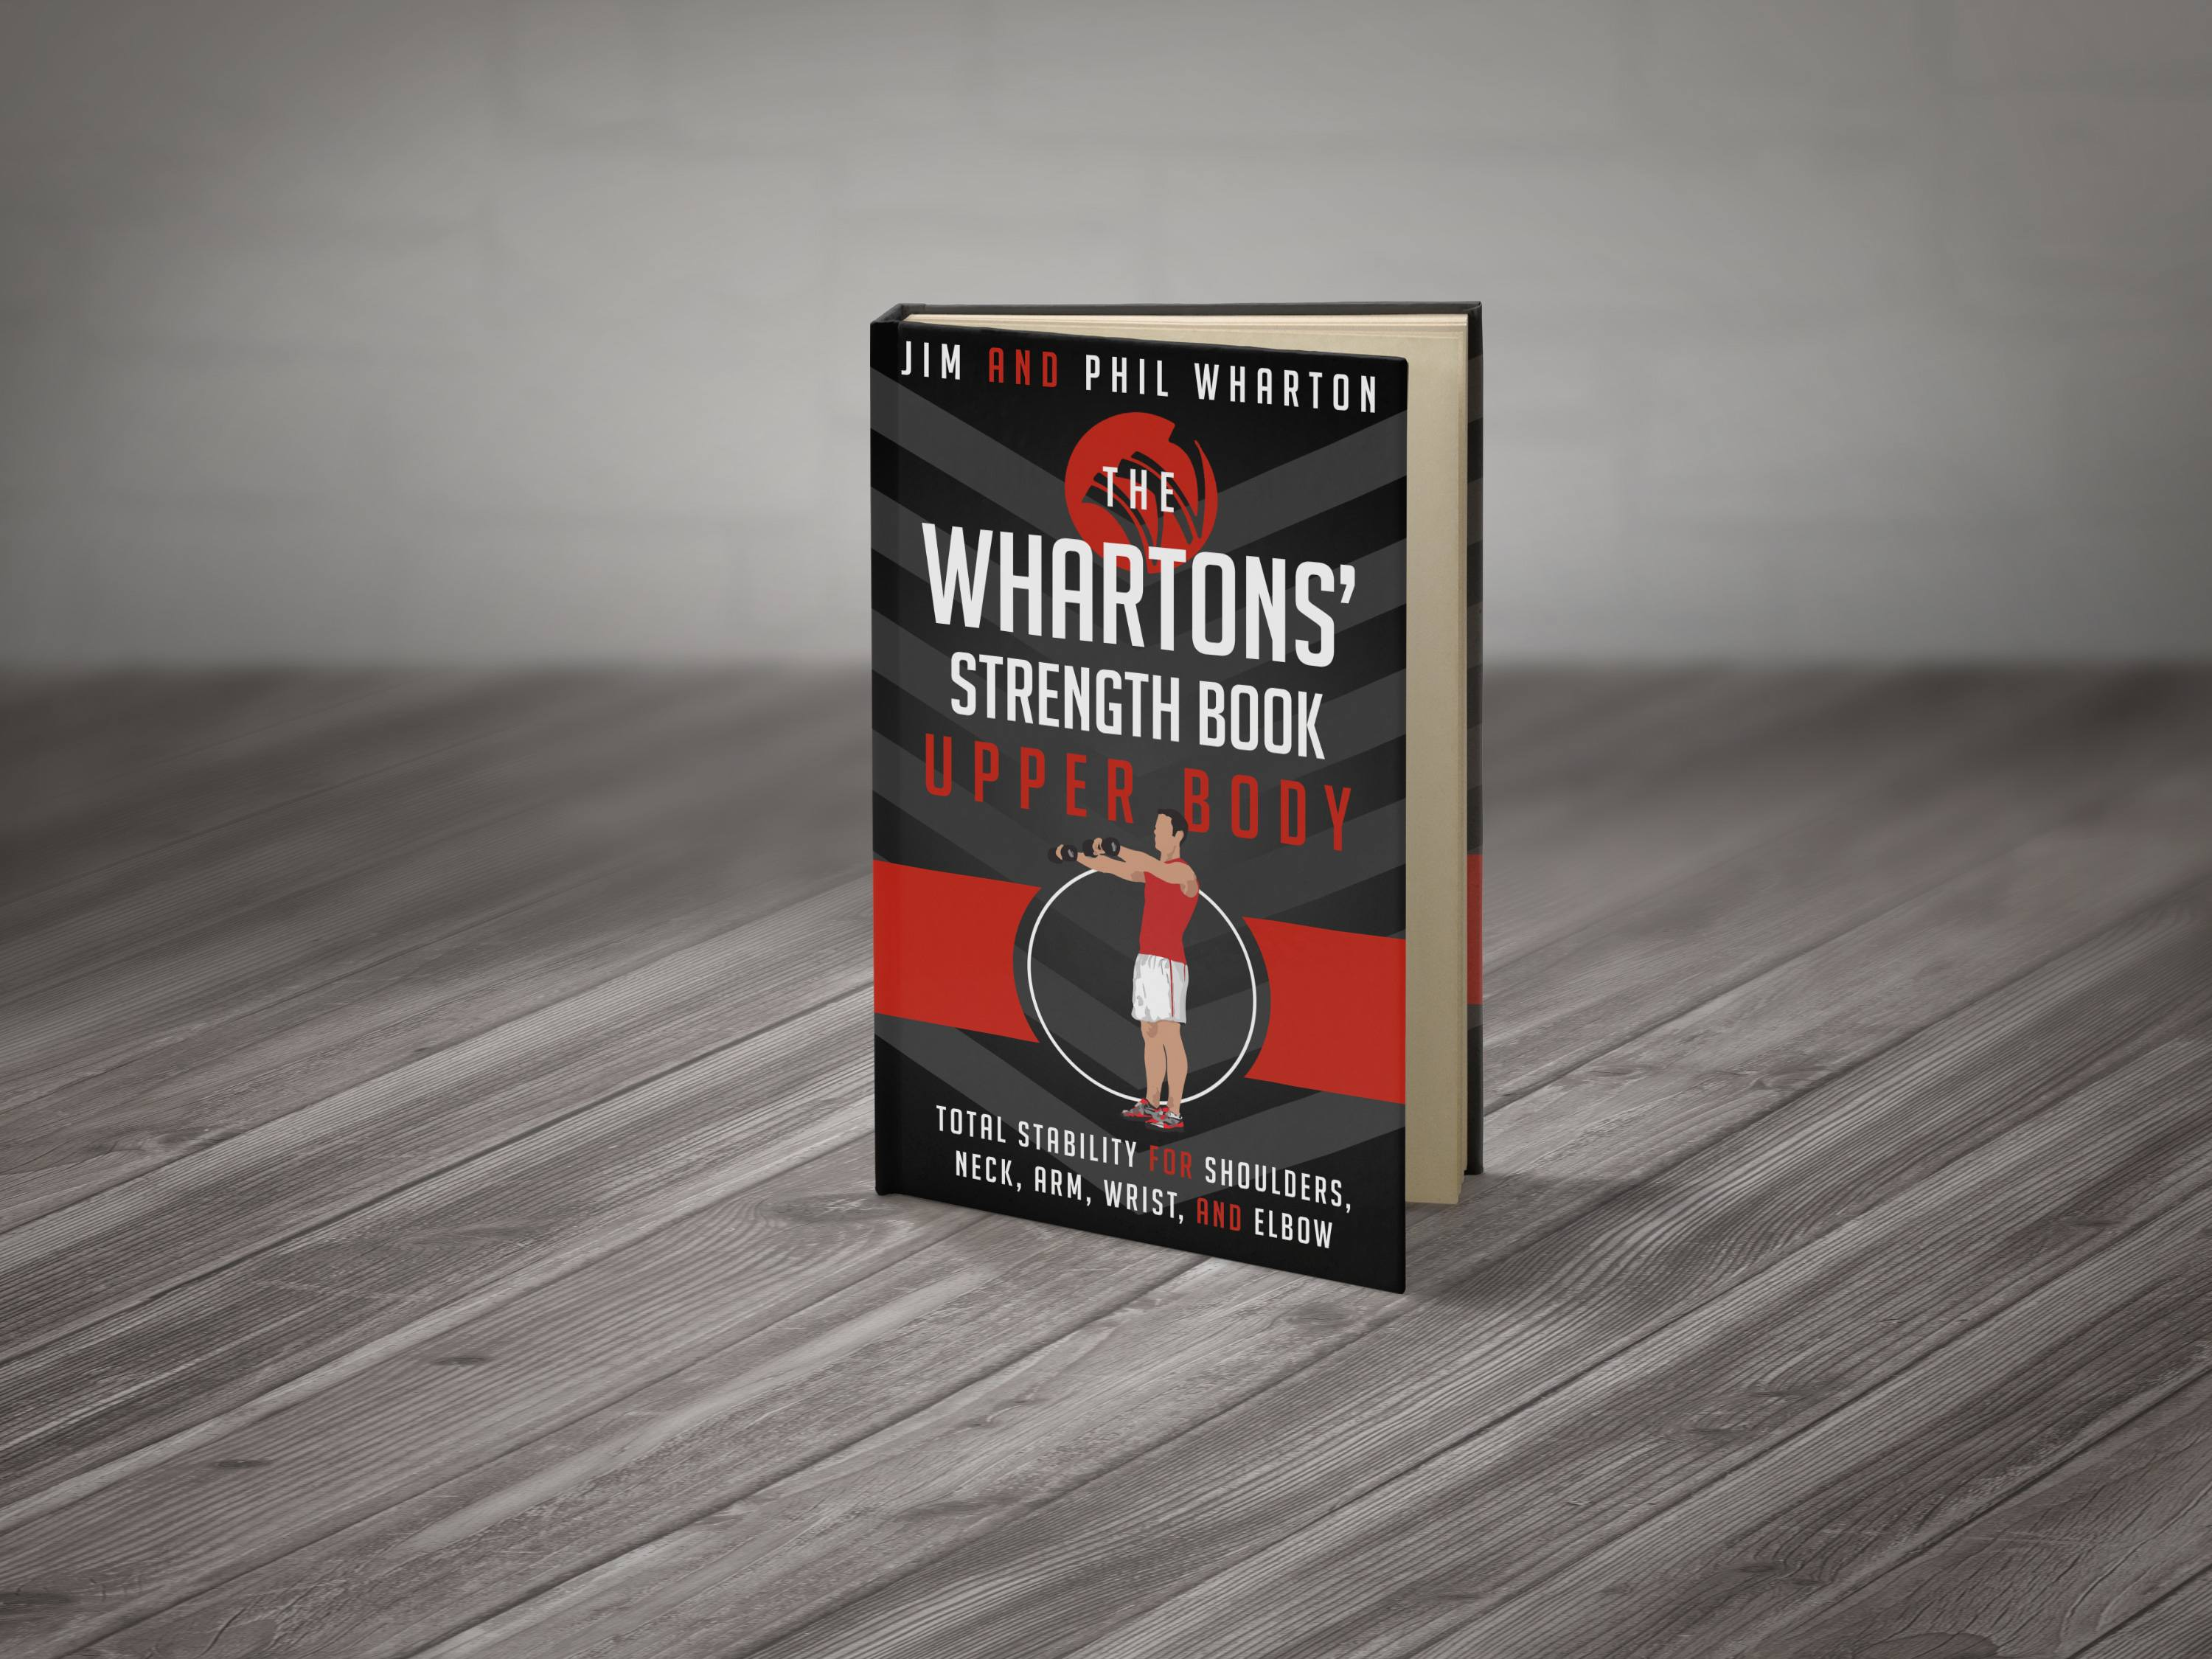 The Whartons Strength Book: Upper Body